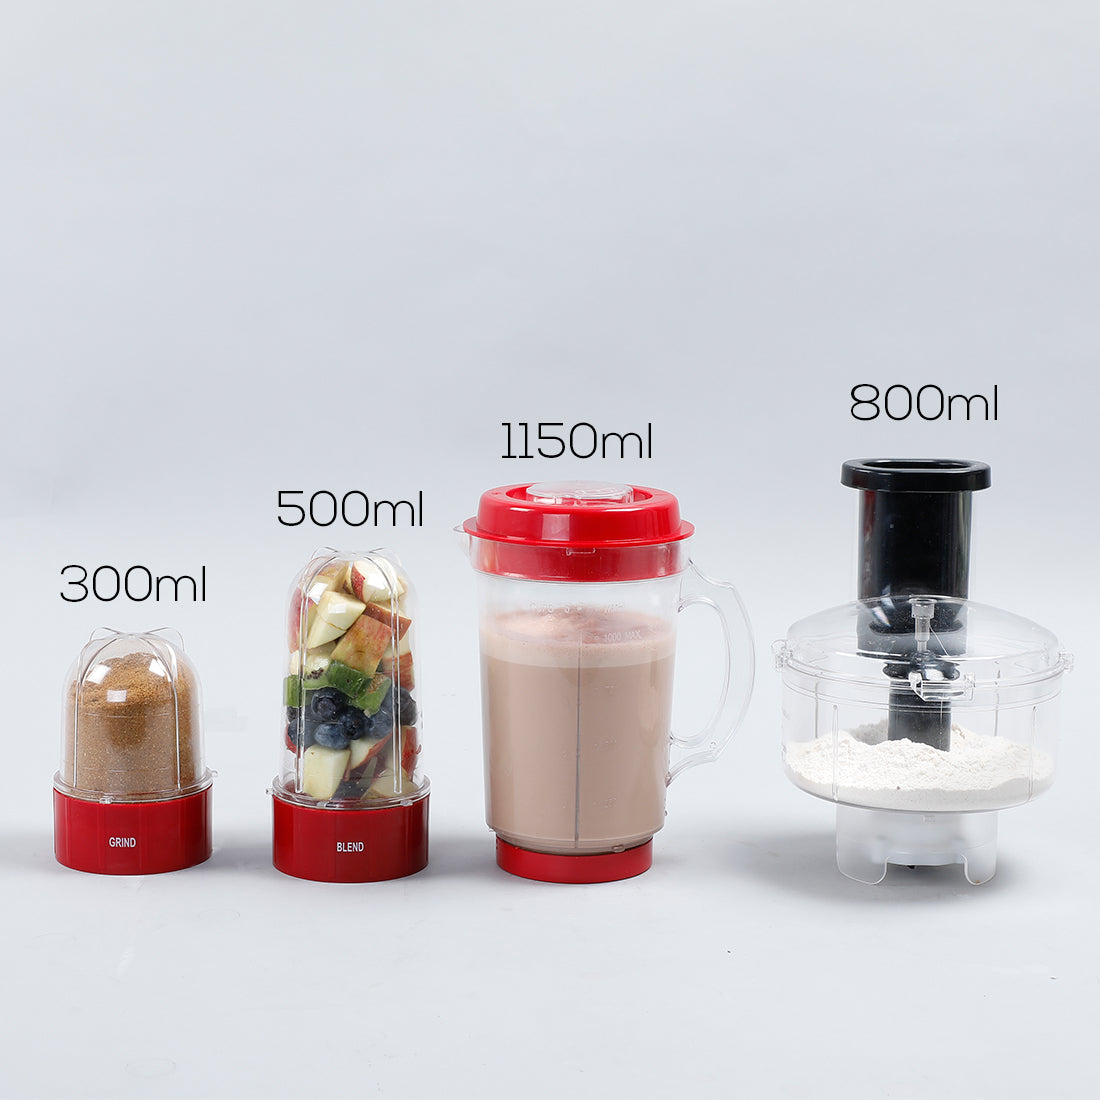 Nutri-blend Compact Food Processor with Atta Kneader, 400W, 22000 RPM Mixer-Grinder, Blender, Chopper, Juicer, SS Blades, 4 Unbreakable Jars, 2 Years Warranty, Red, E-Recipe Book By Chef Sanjeev Kapoor